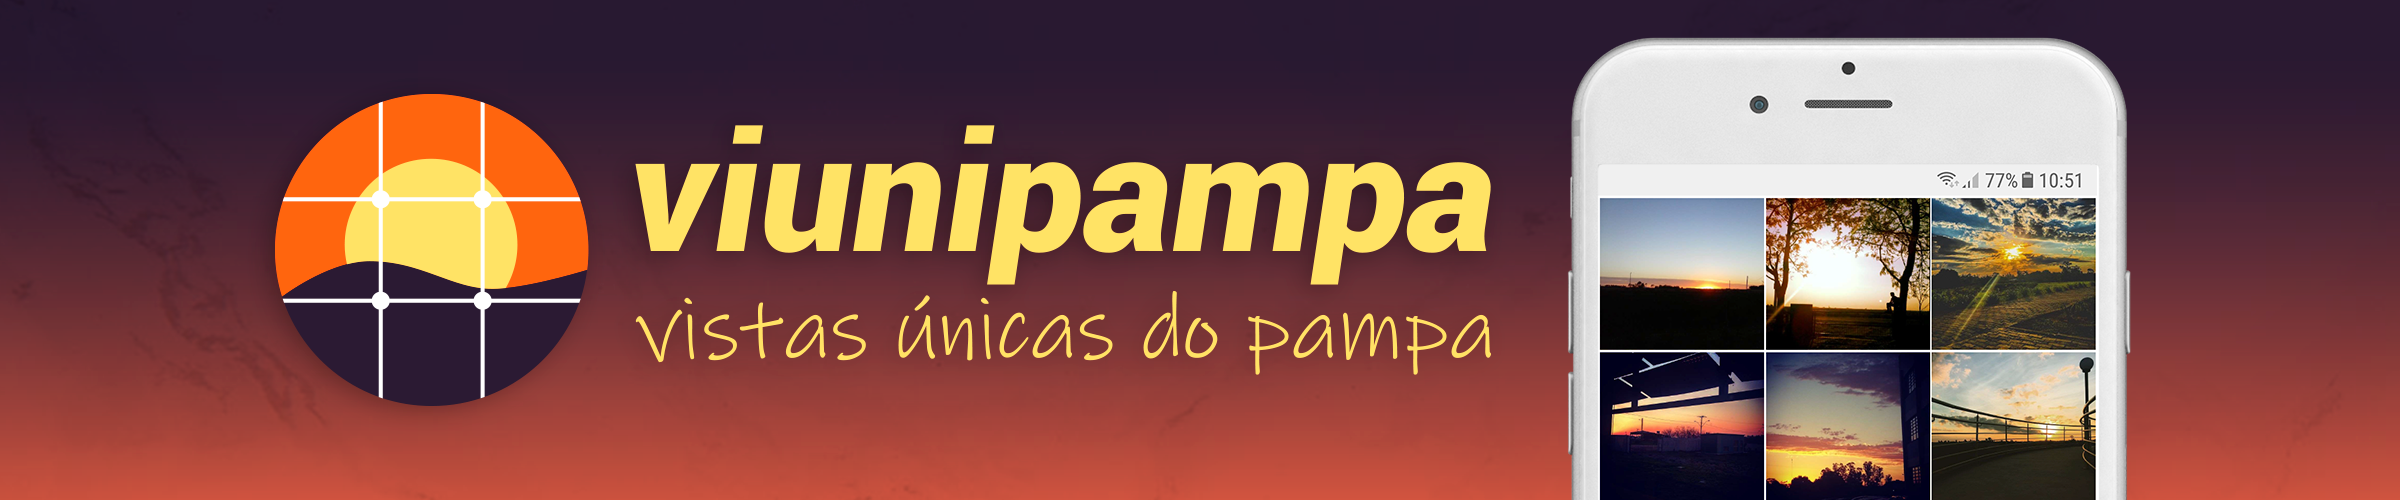 #VIUNIPAMPA – Vistas Únicas do Pampa no Instagram